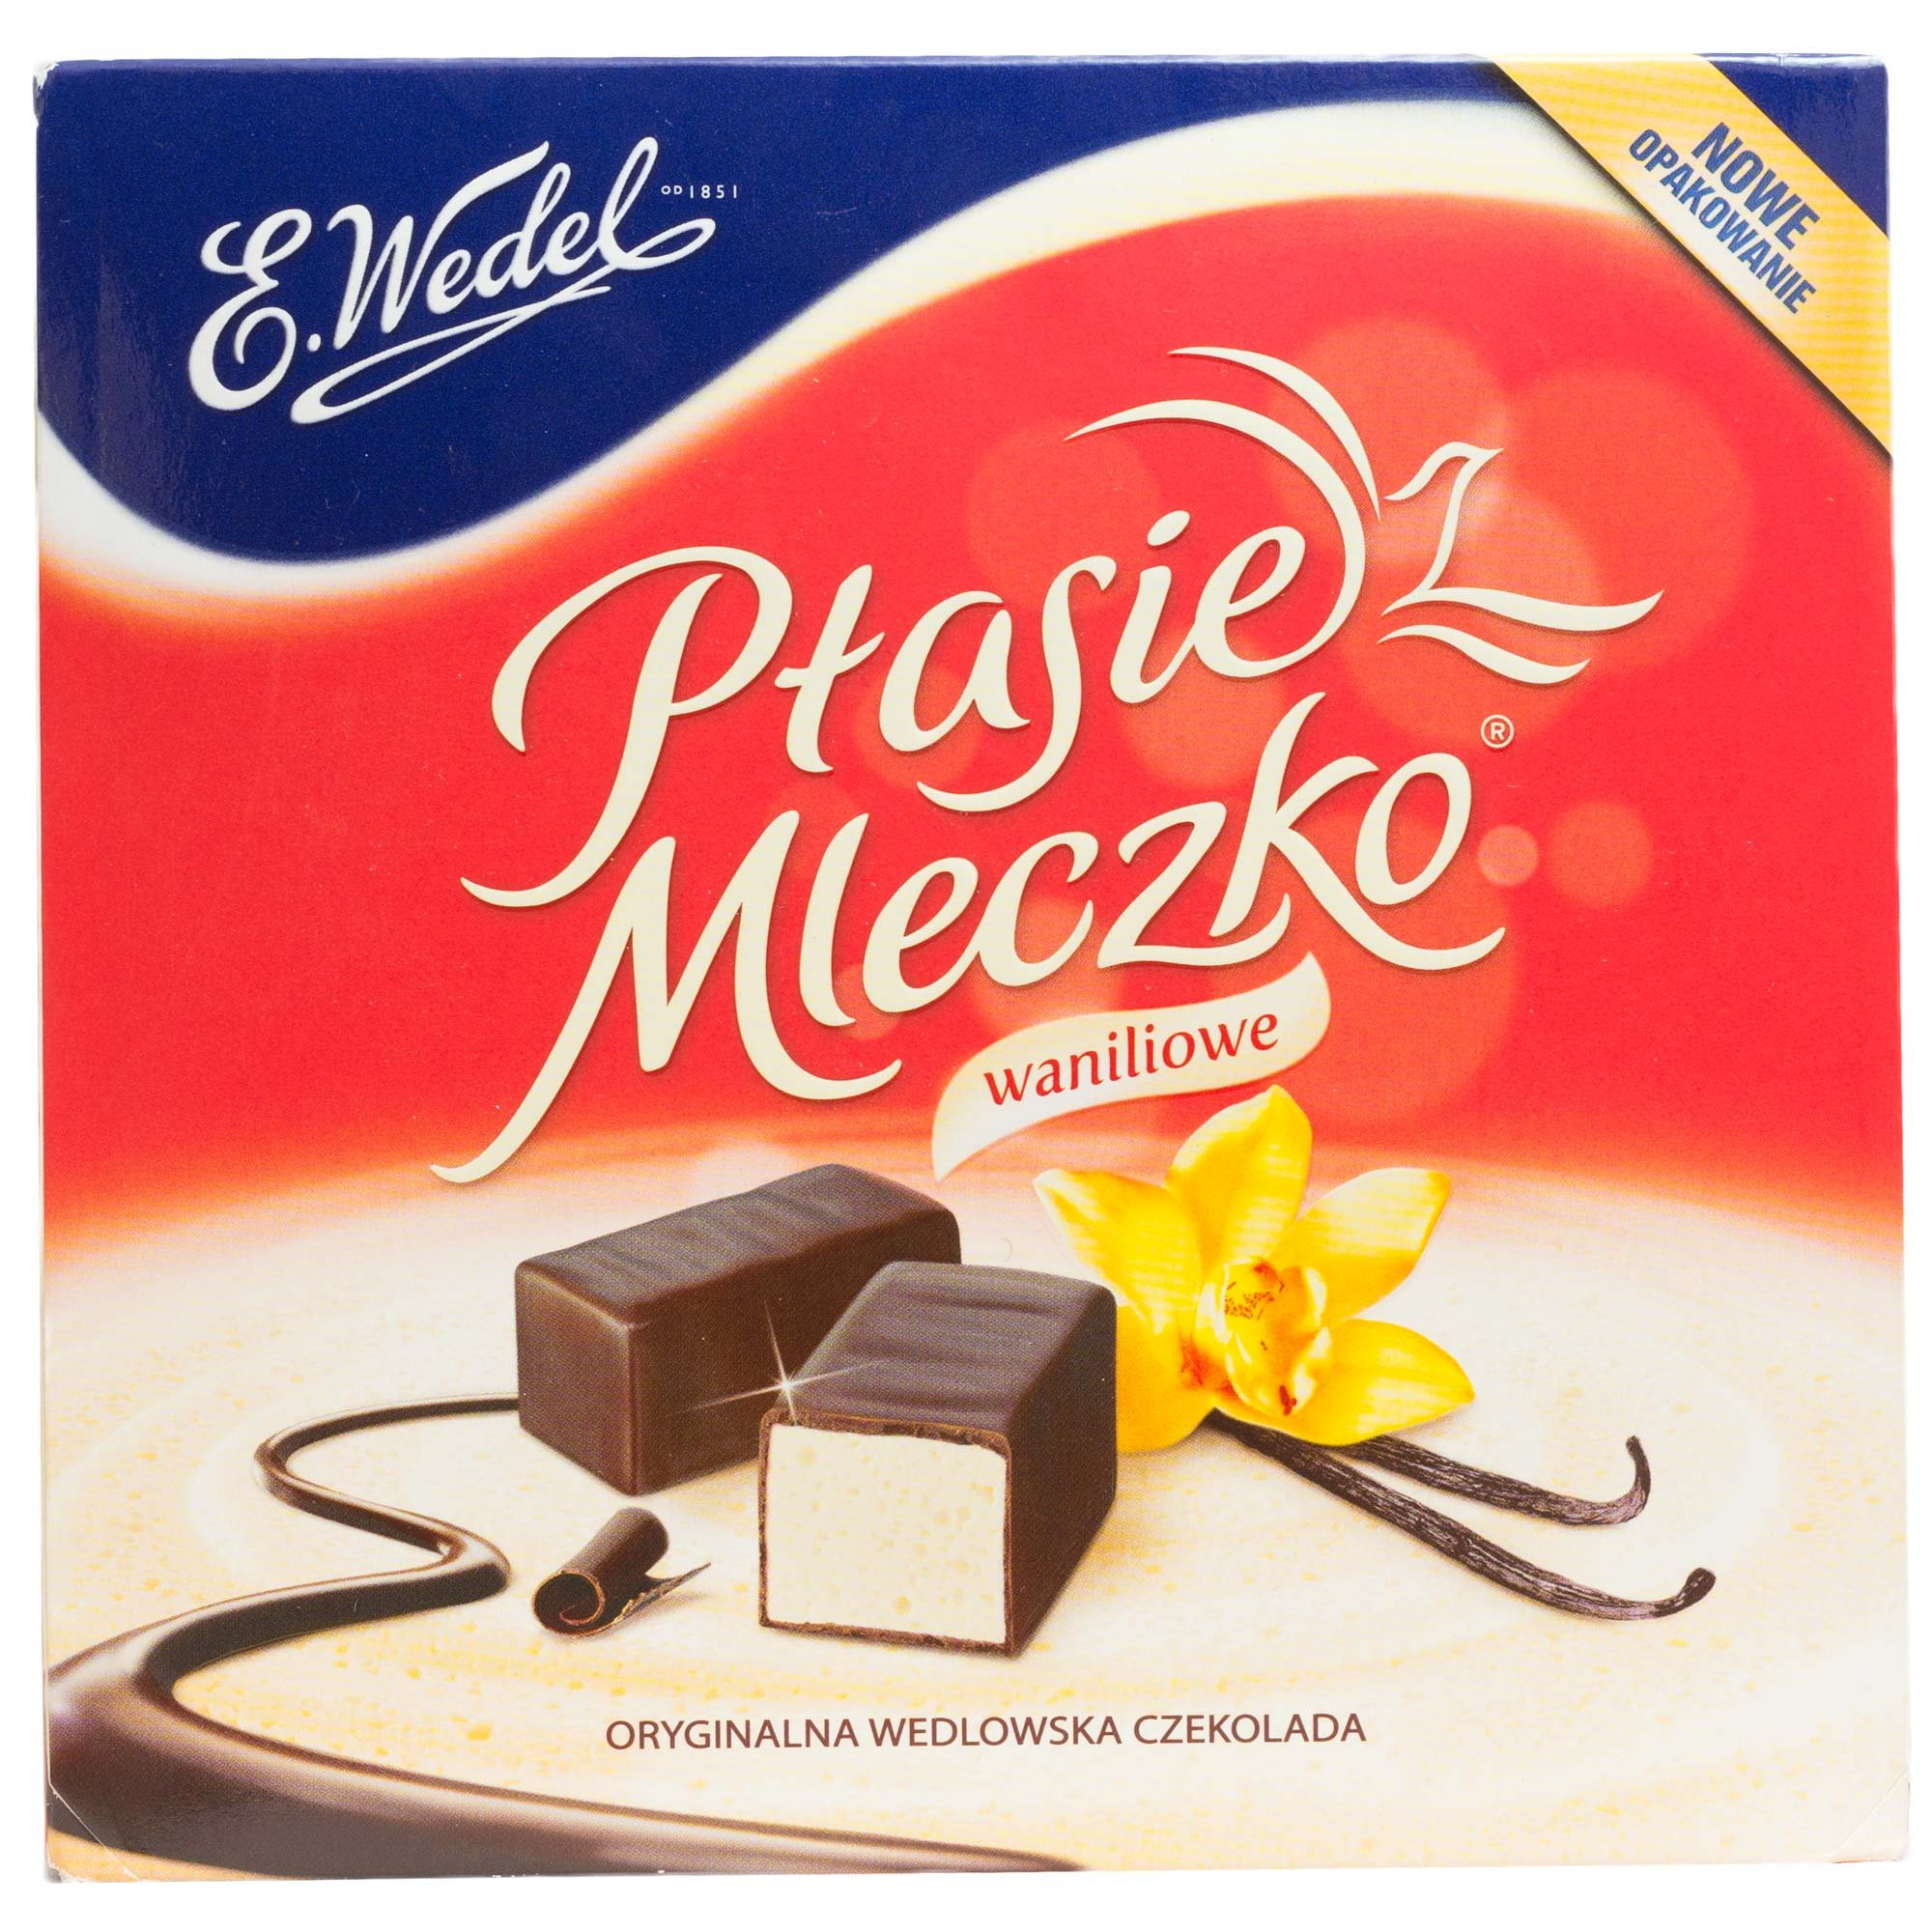 Ptasie Mleczko Chocolate Covered Vanilla Marshmallow (birds milk chocolate), 13.4 Oz.